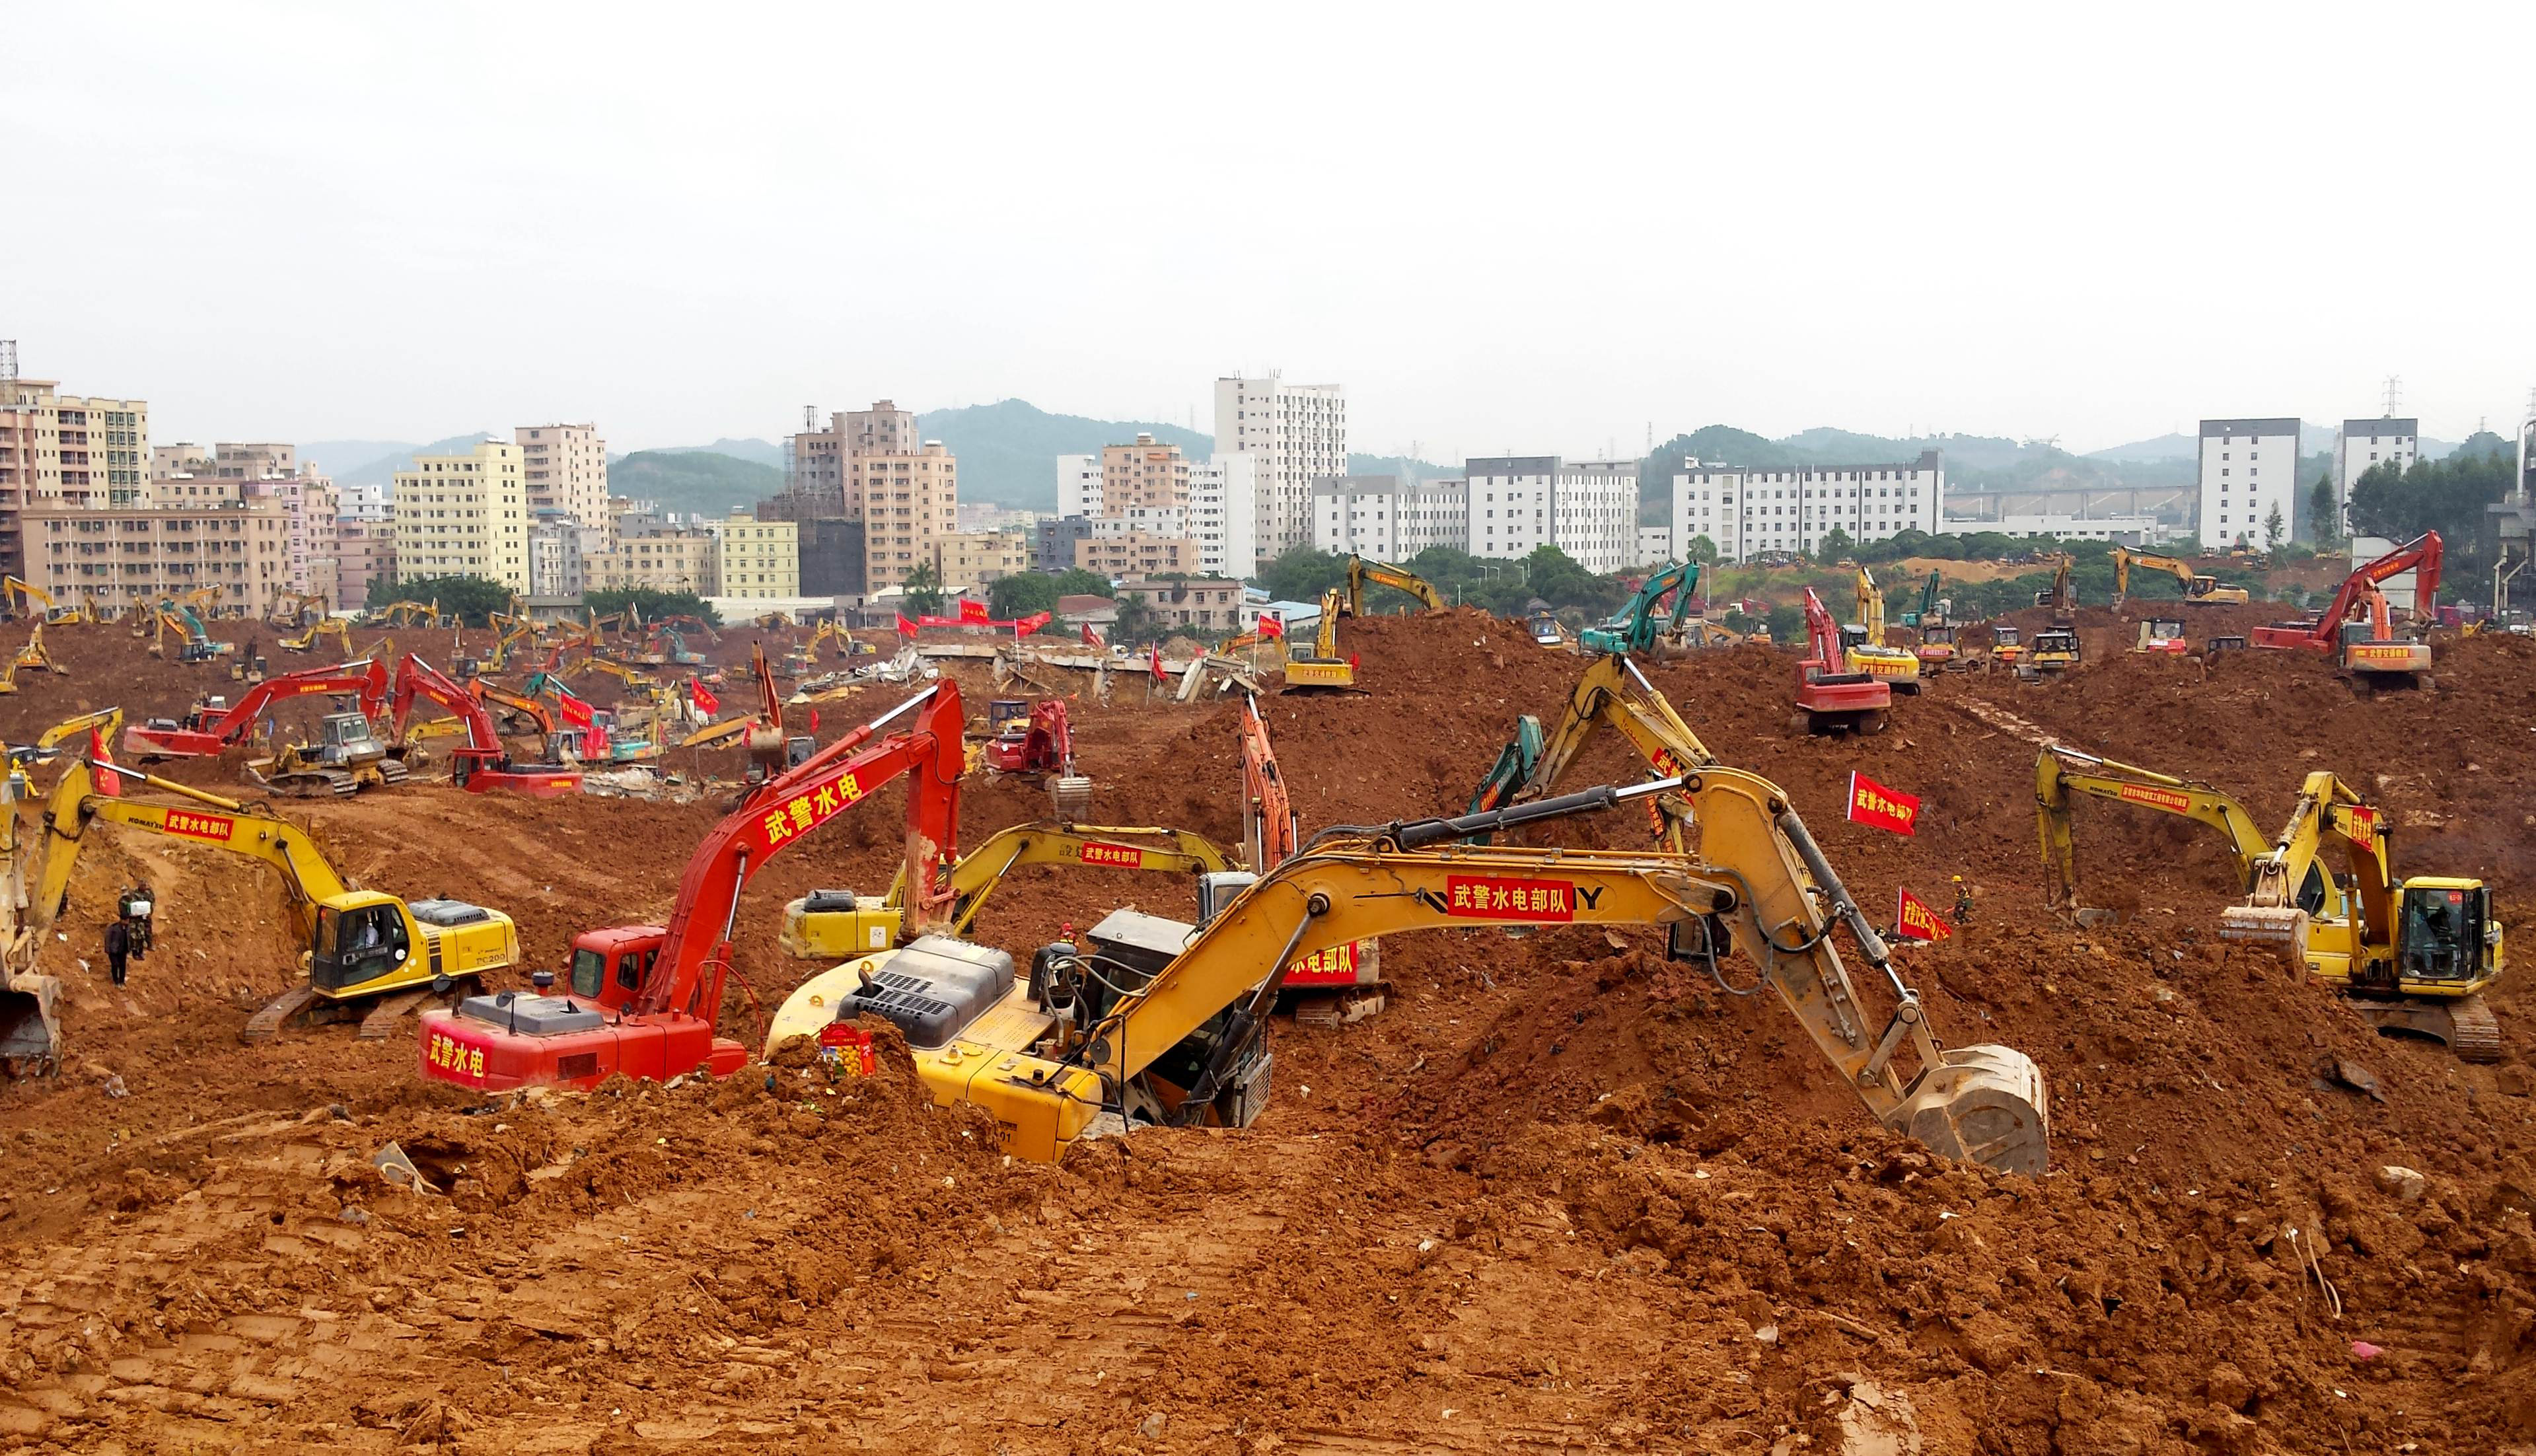 Excavators are seen working at the site of the landslide in an industrial area in Shenzhen, southern China's Guangdong province, on Dec. 28, 2015